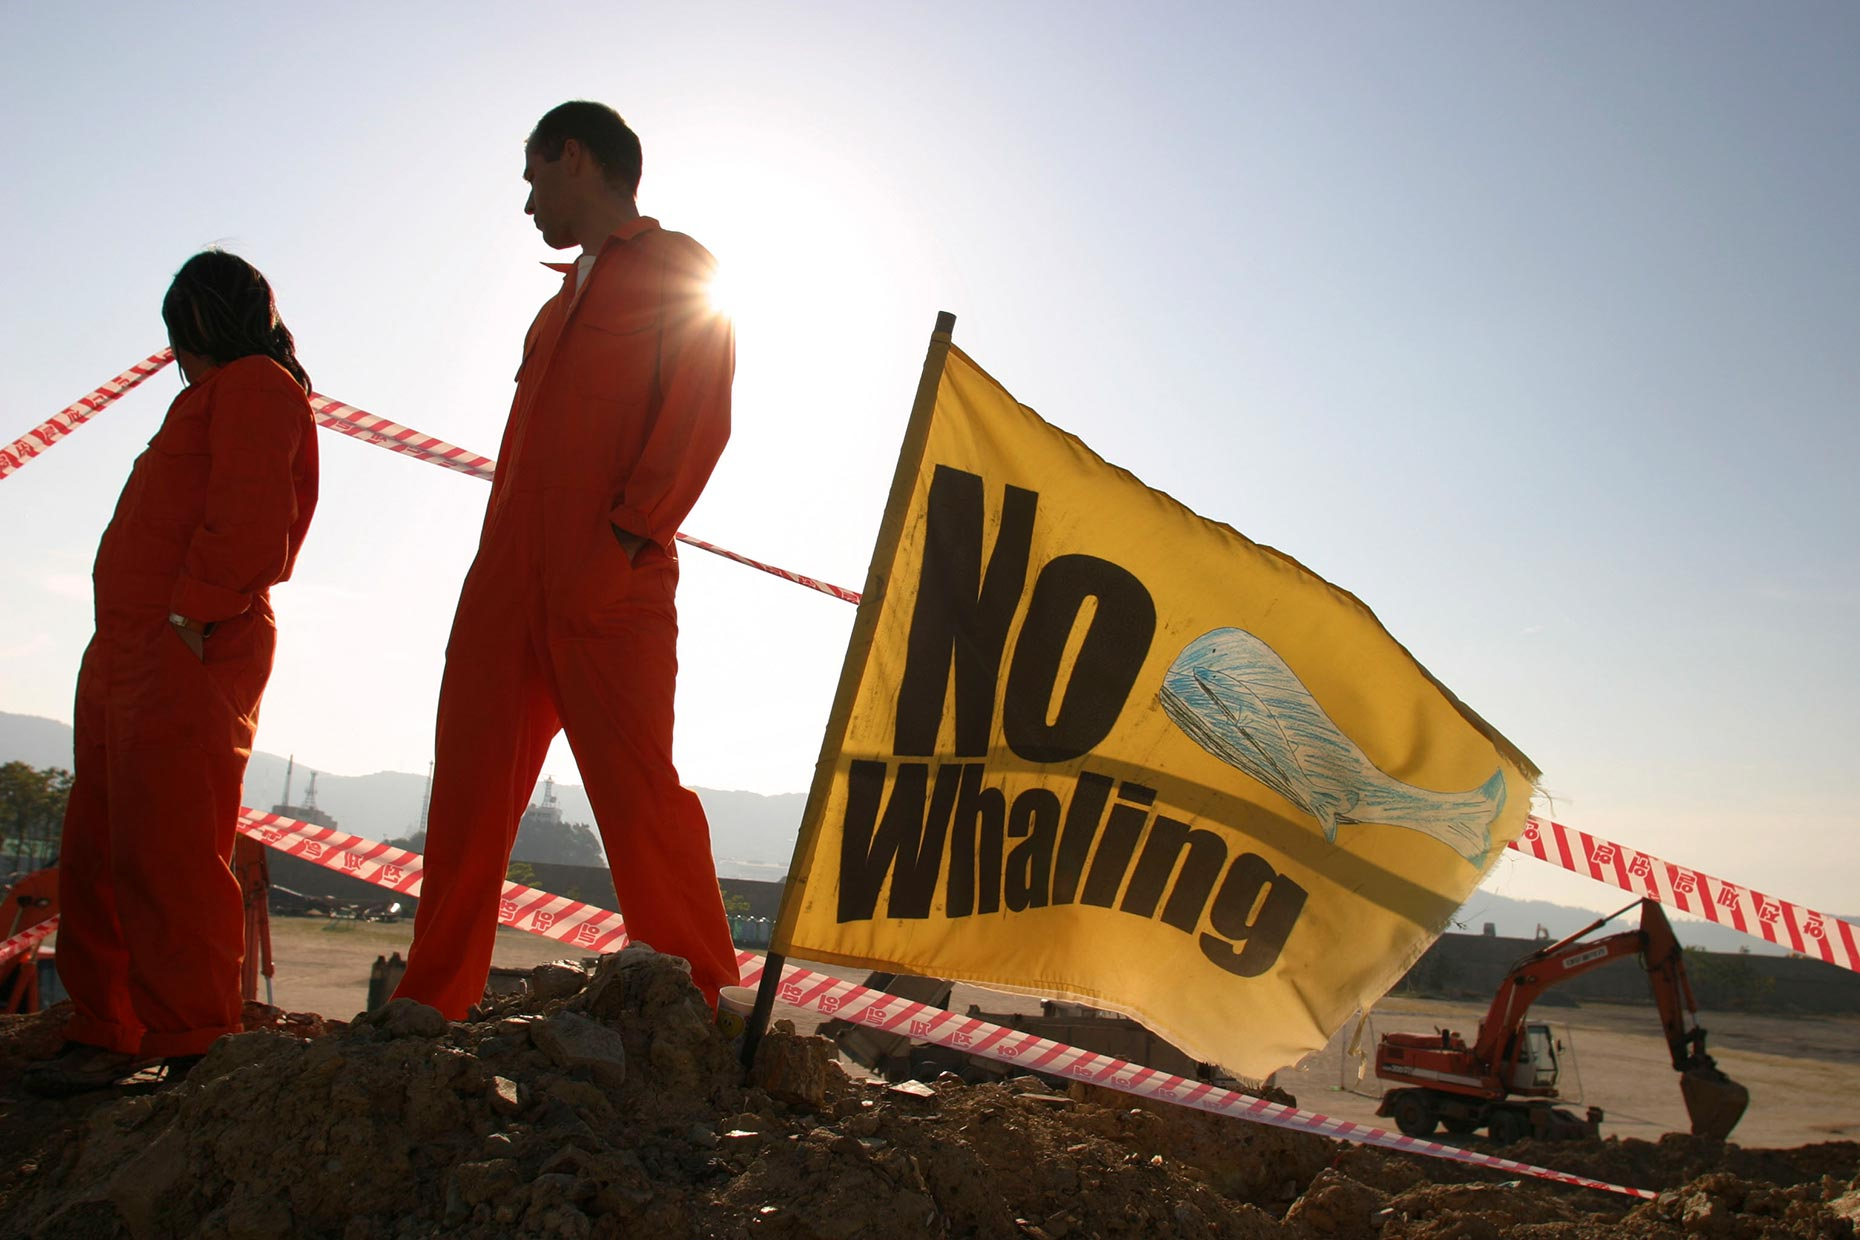 Anti-whaling protest in Korea, by Scotland Greenpeace photographer